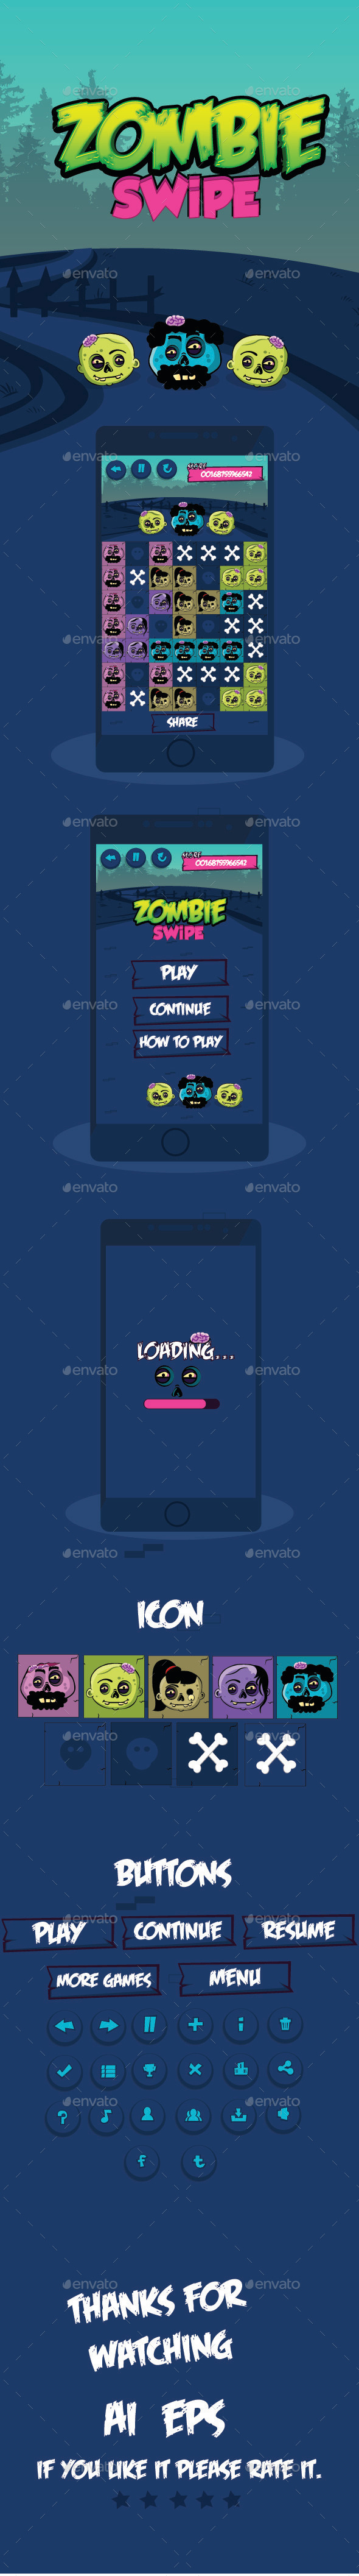 GraphicRiver Zombie Swipe Game UI 11332685